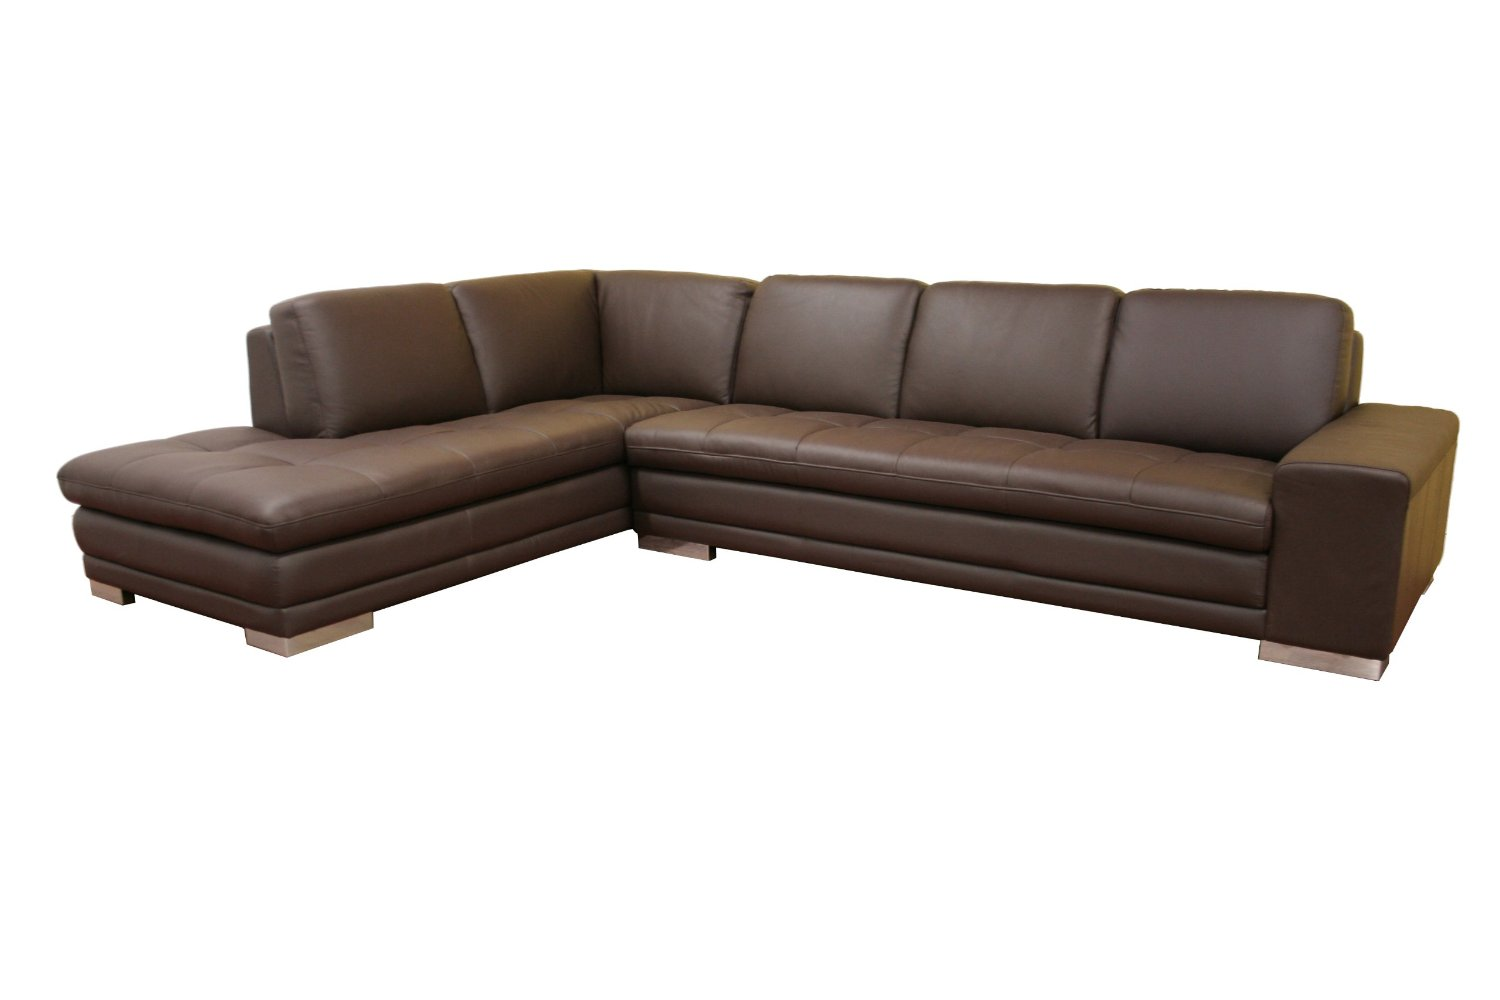 Brown Leather Sectional Sofa 1500 x 1000